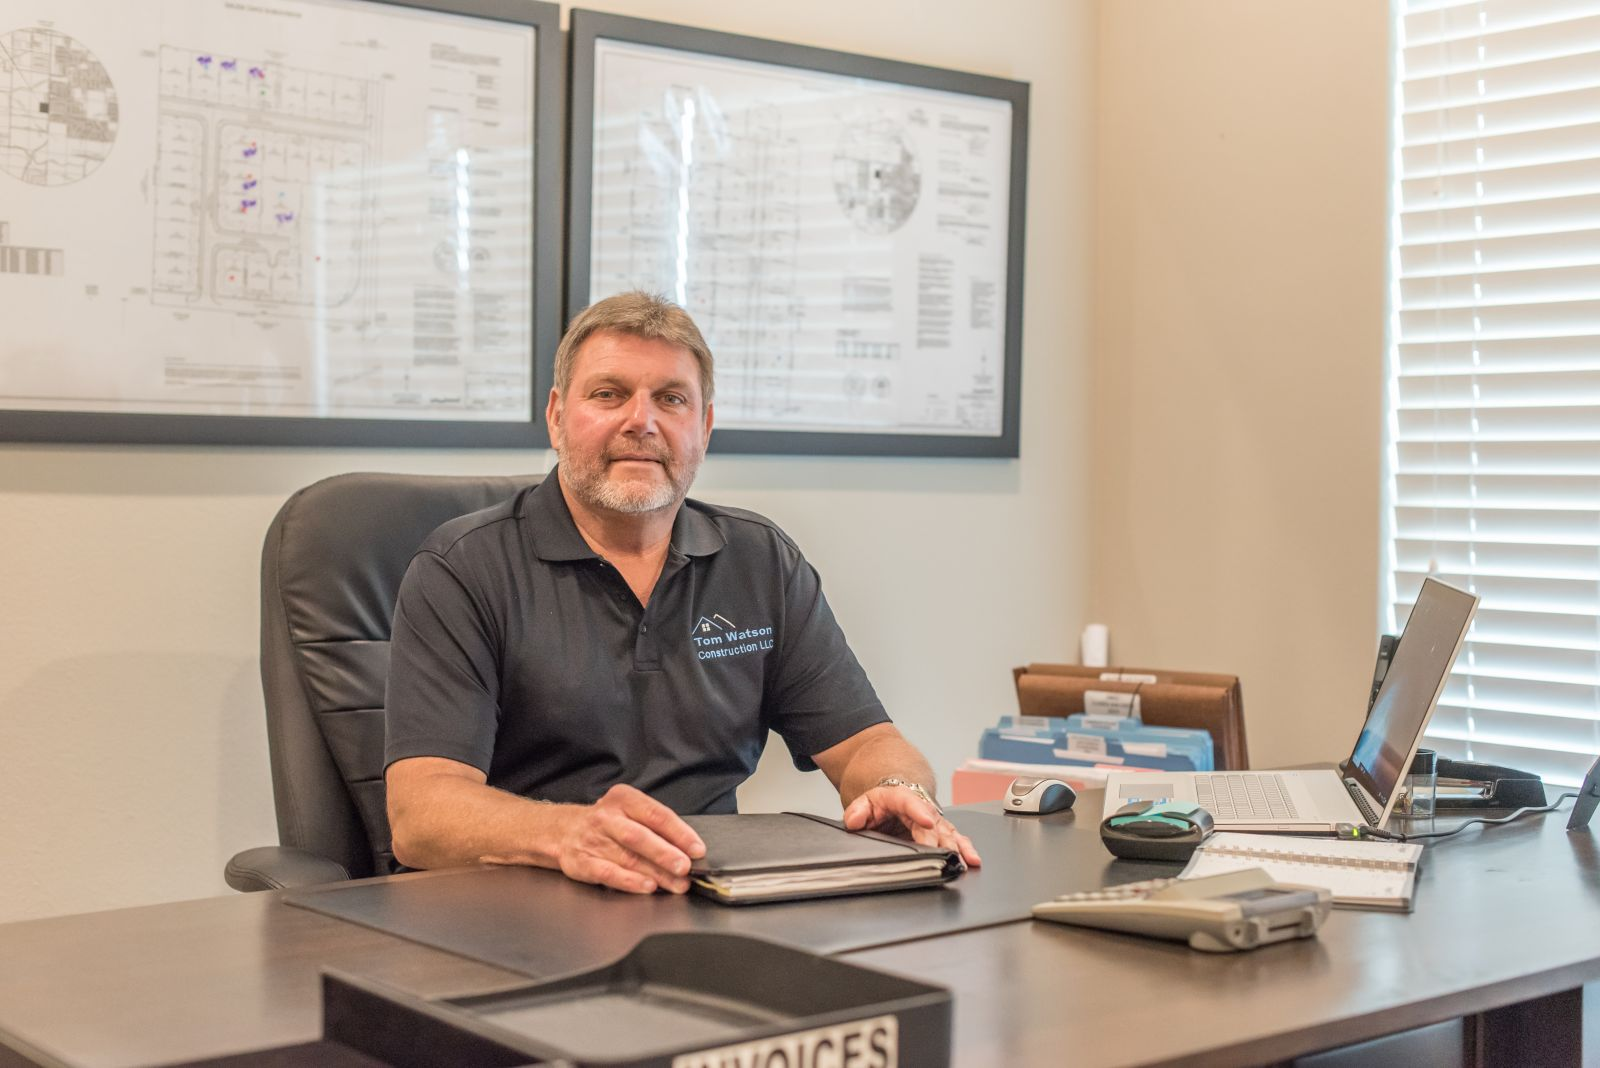 Tom Watson has over 35 years of home construction experience in Conway